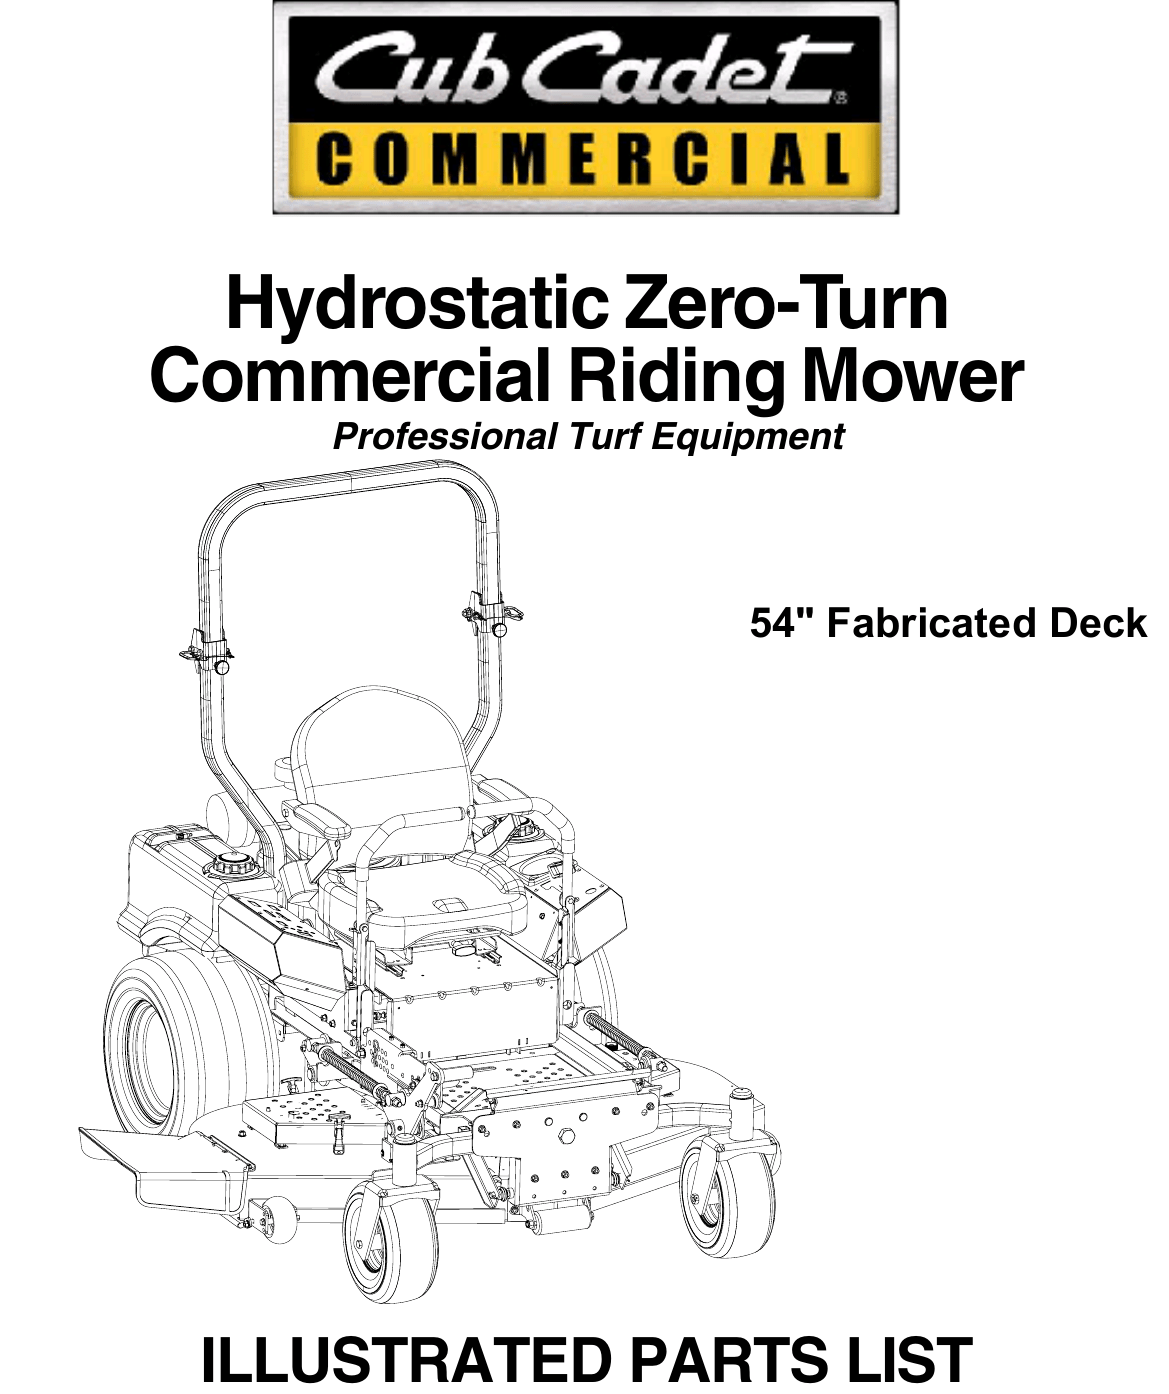 Cub Cadet 53Ai8Ctw750 Users Manual 02003429 Rev 07_4